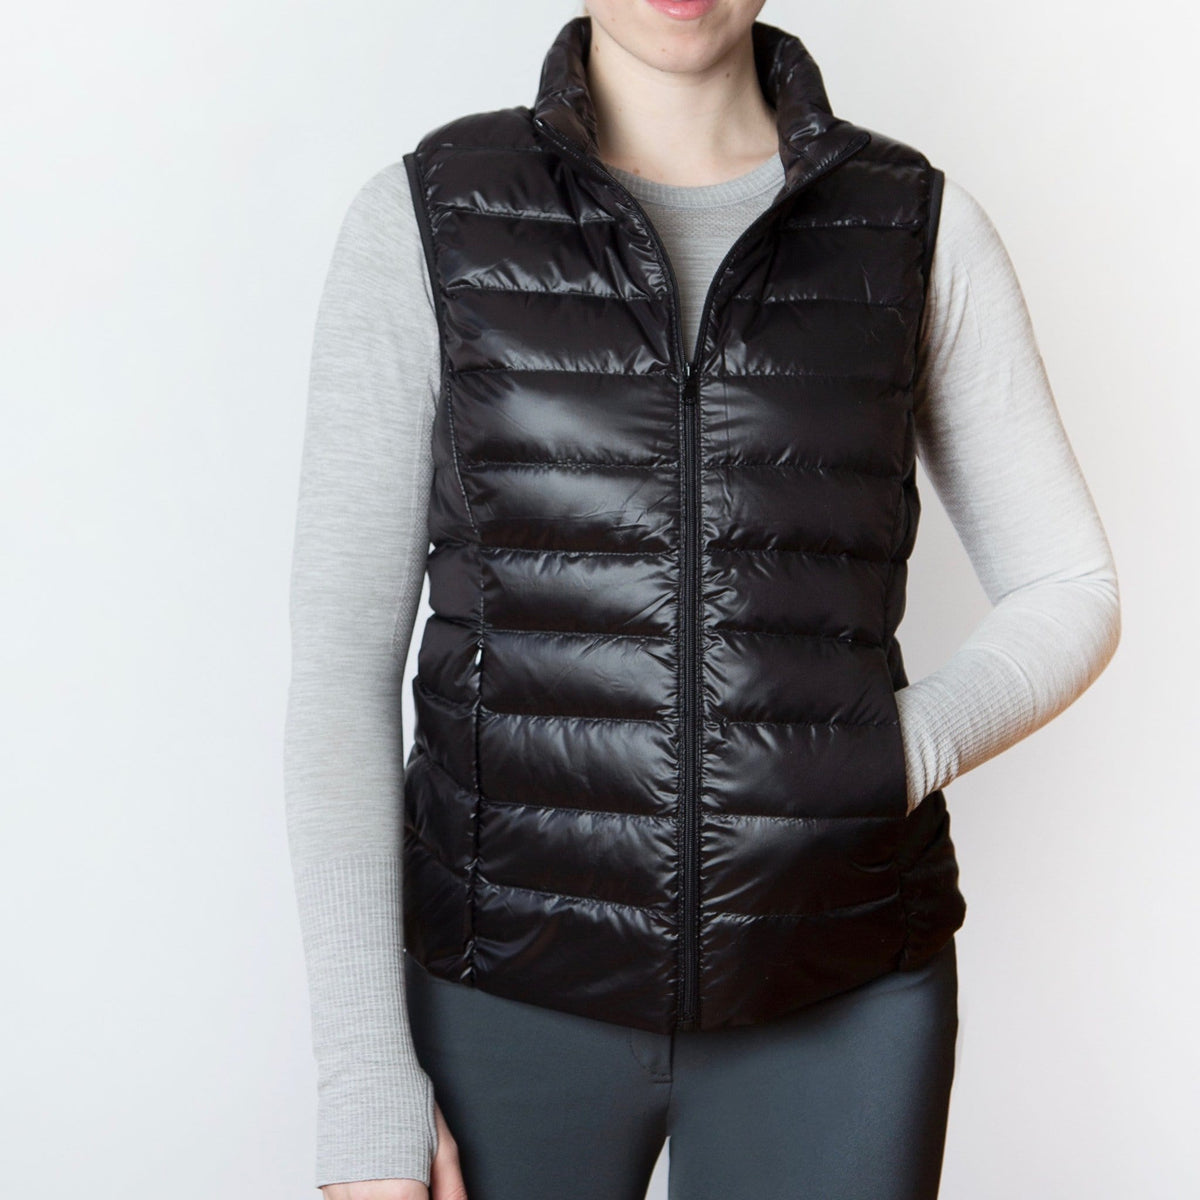 TKEQ Jacket XS EZ Packable Down Vest- Classic Black equestrian team apparel online tack store mobile tack store custom farm apparel custom show stable clothing equestrian lifestyle horse show clothing riding clothes horses equestrian tack store